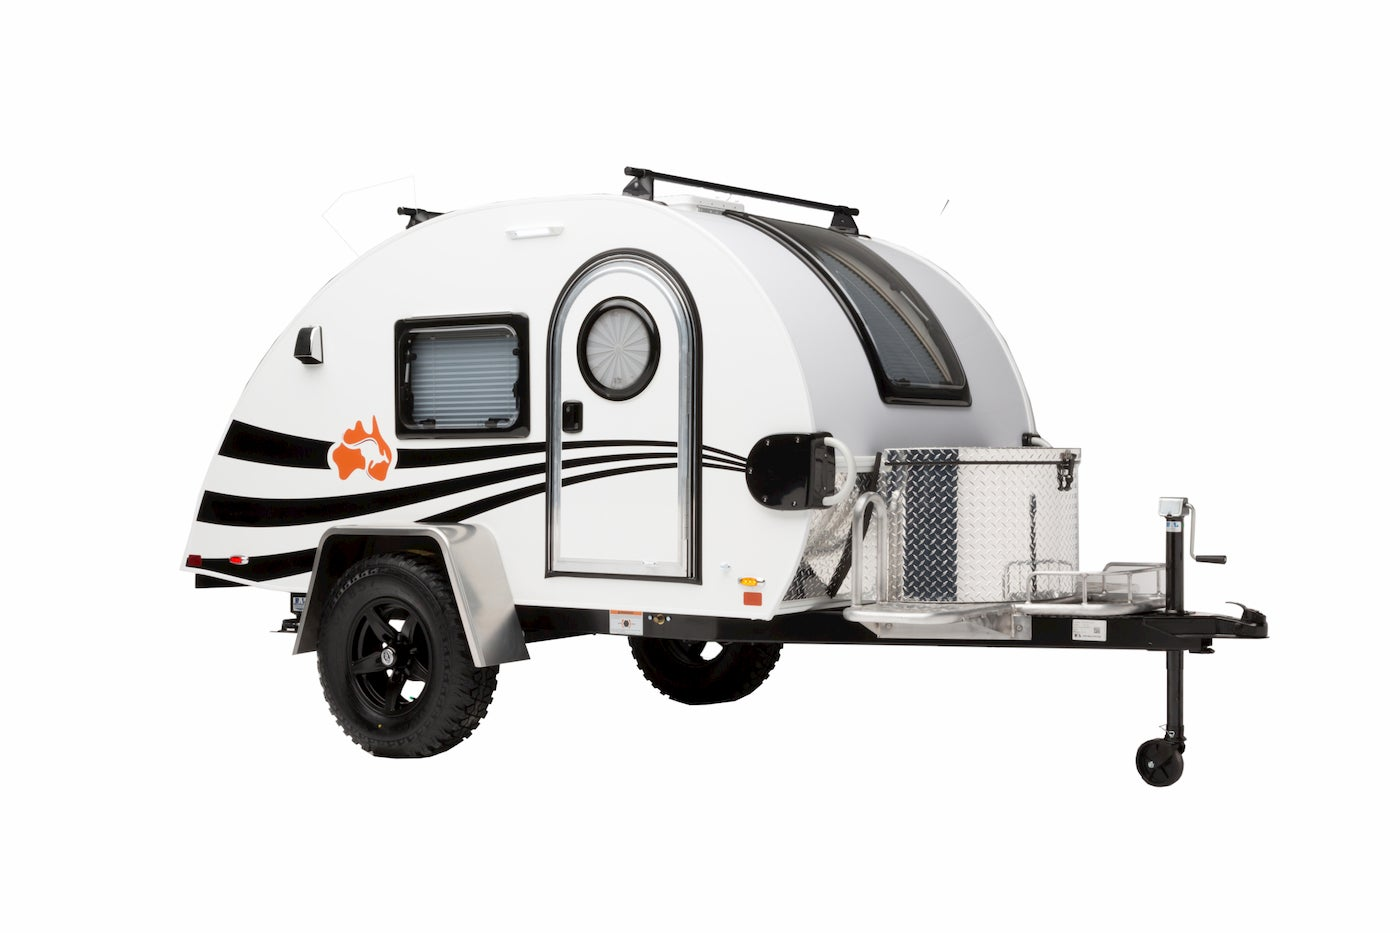 small camper in white